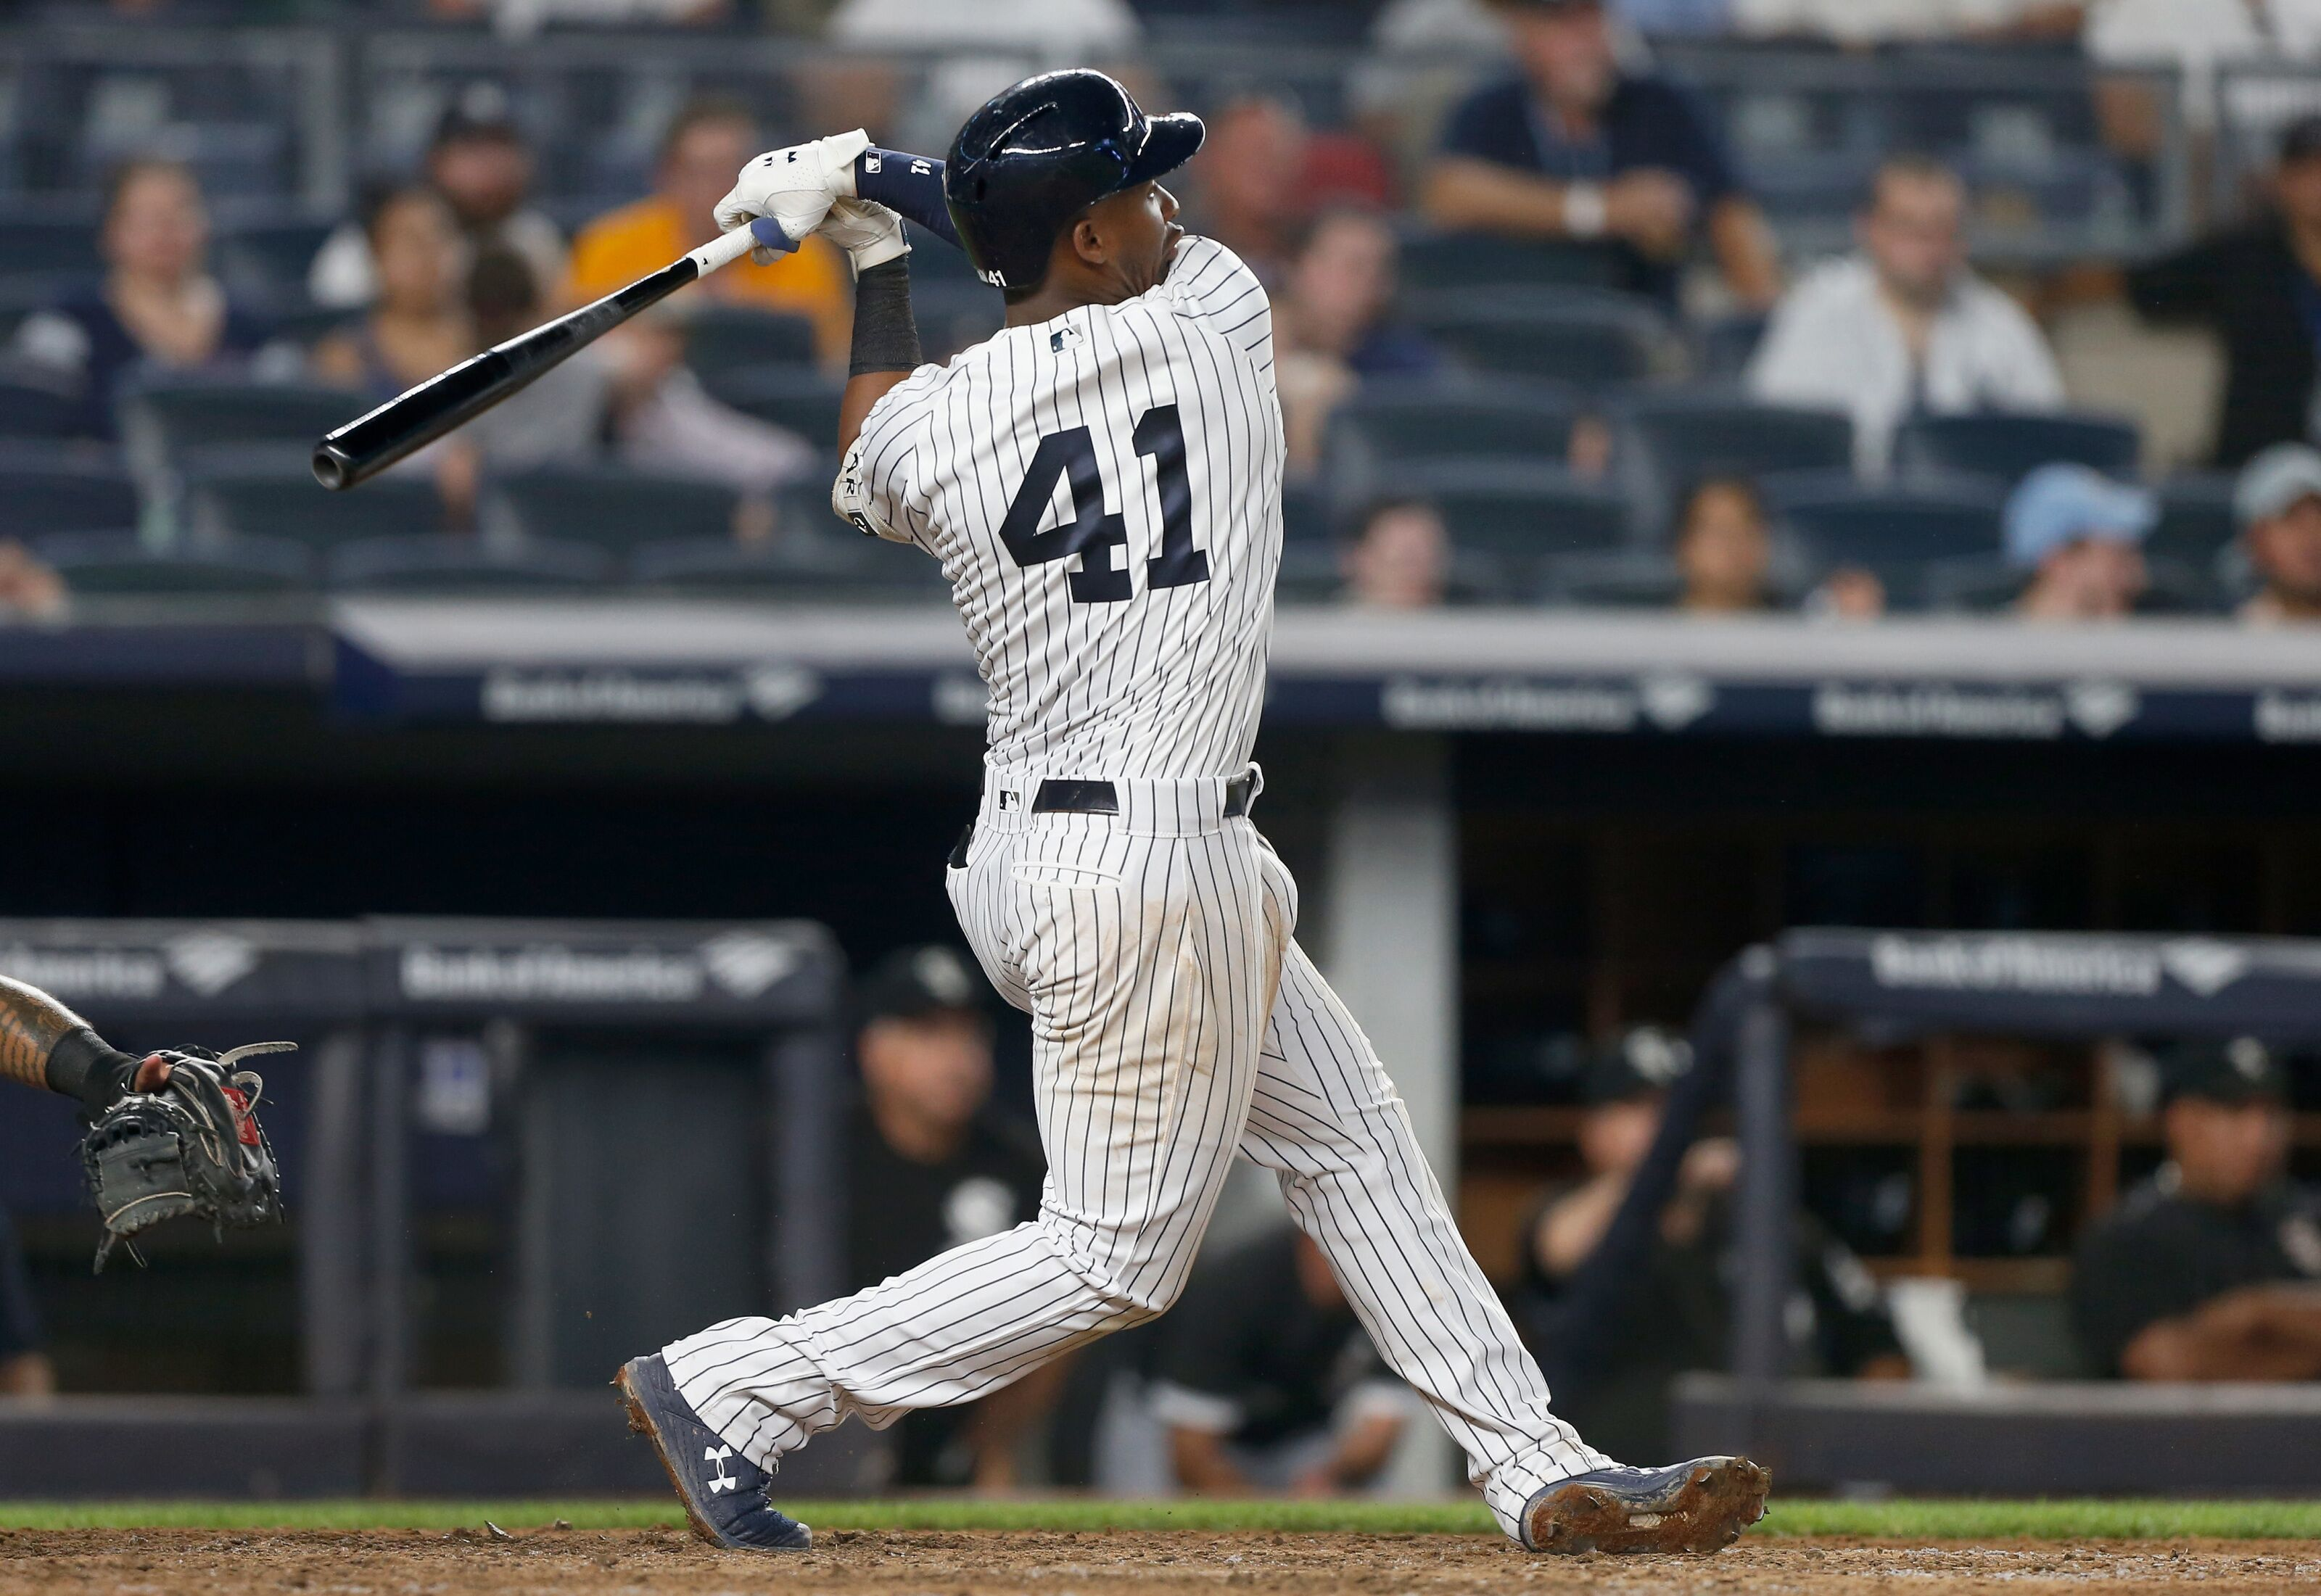 Yankees: Miguel Andujar is the present and future